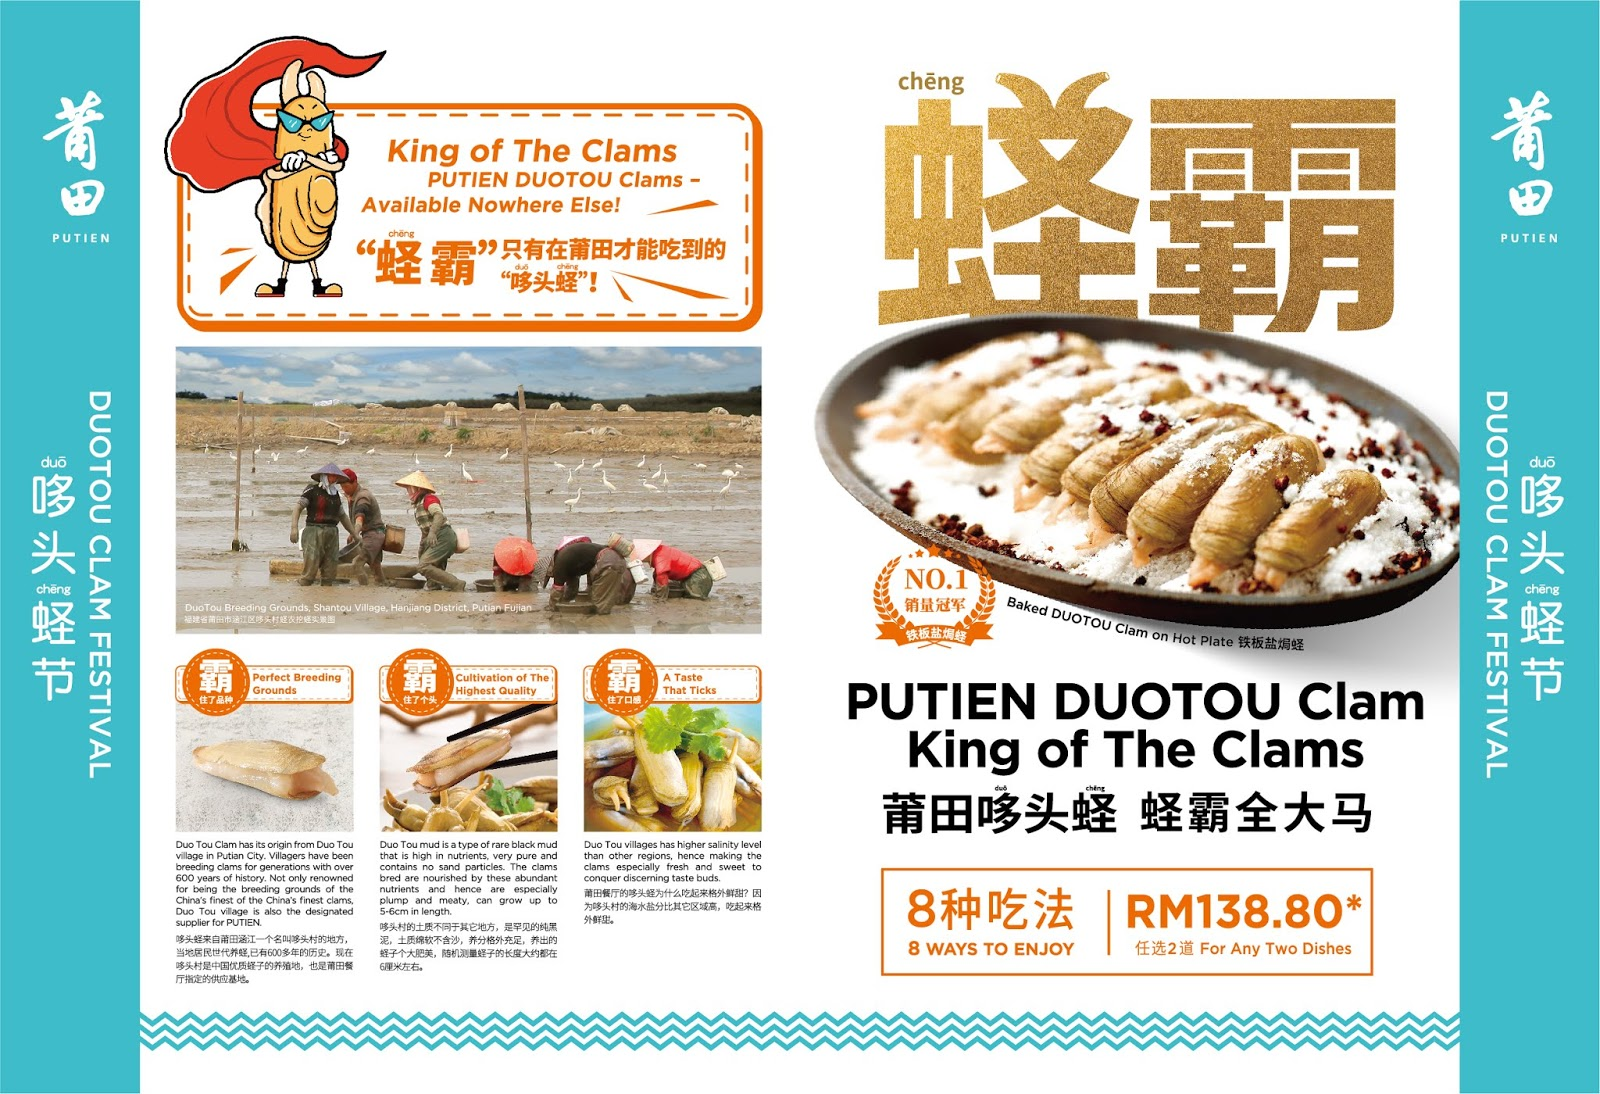 Taste the DOUTOU Clams (哆头蛏) Exclusively Available at Putien Malaysia Only!